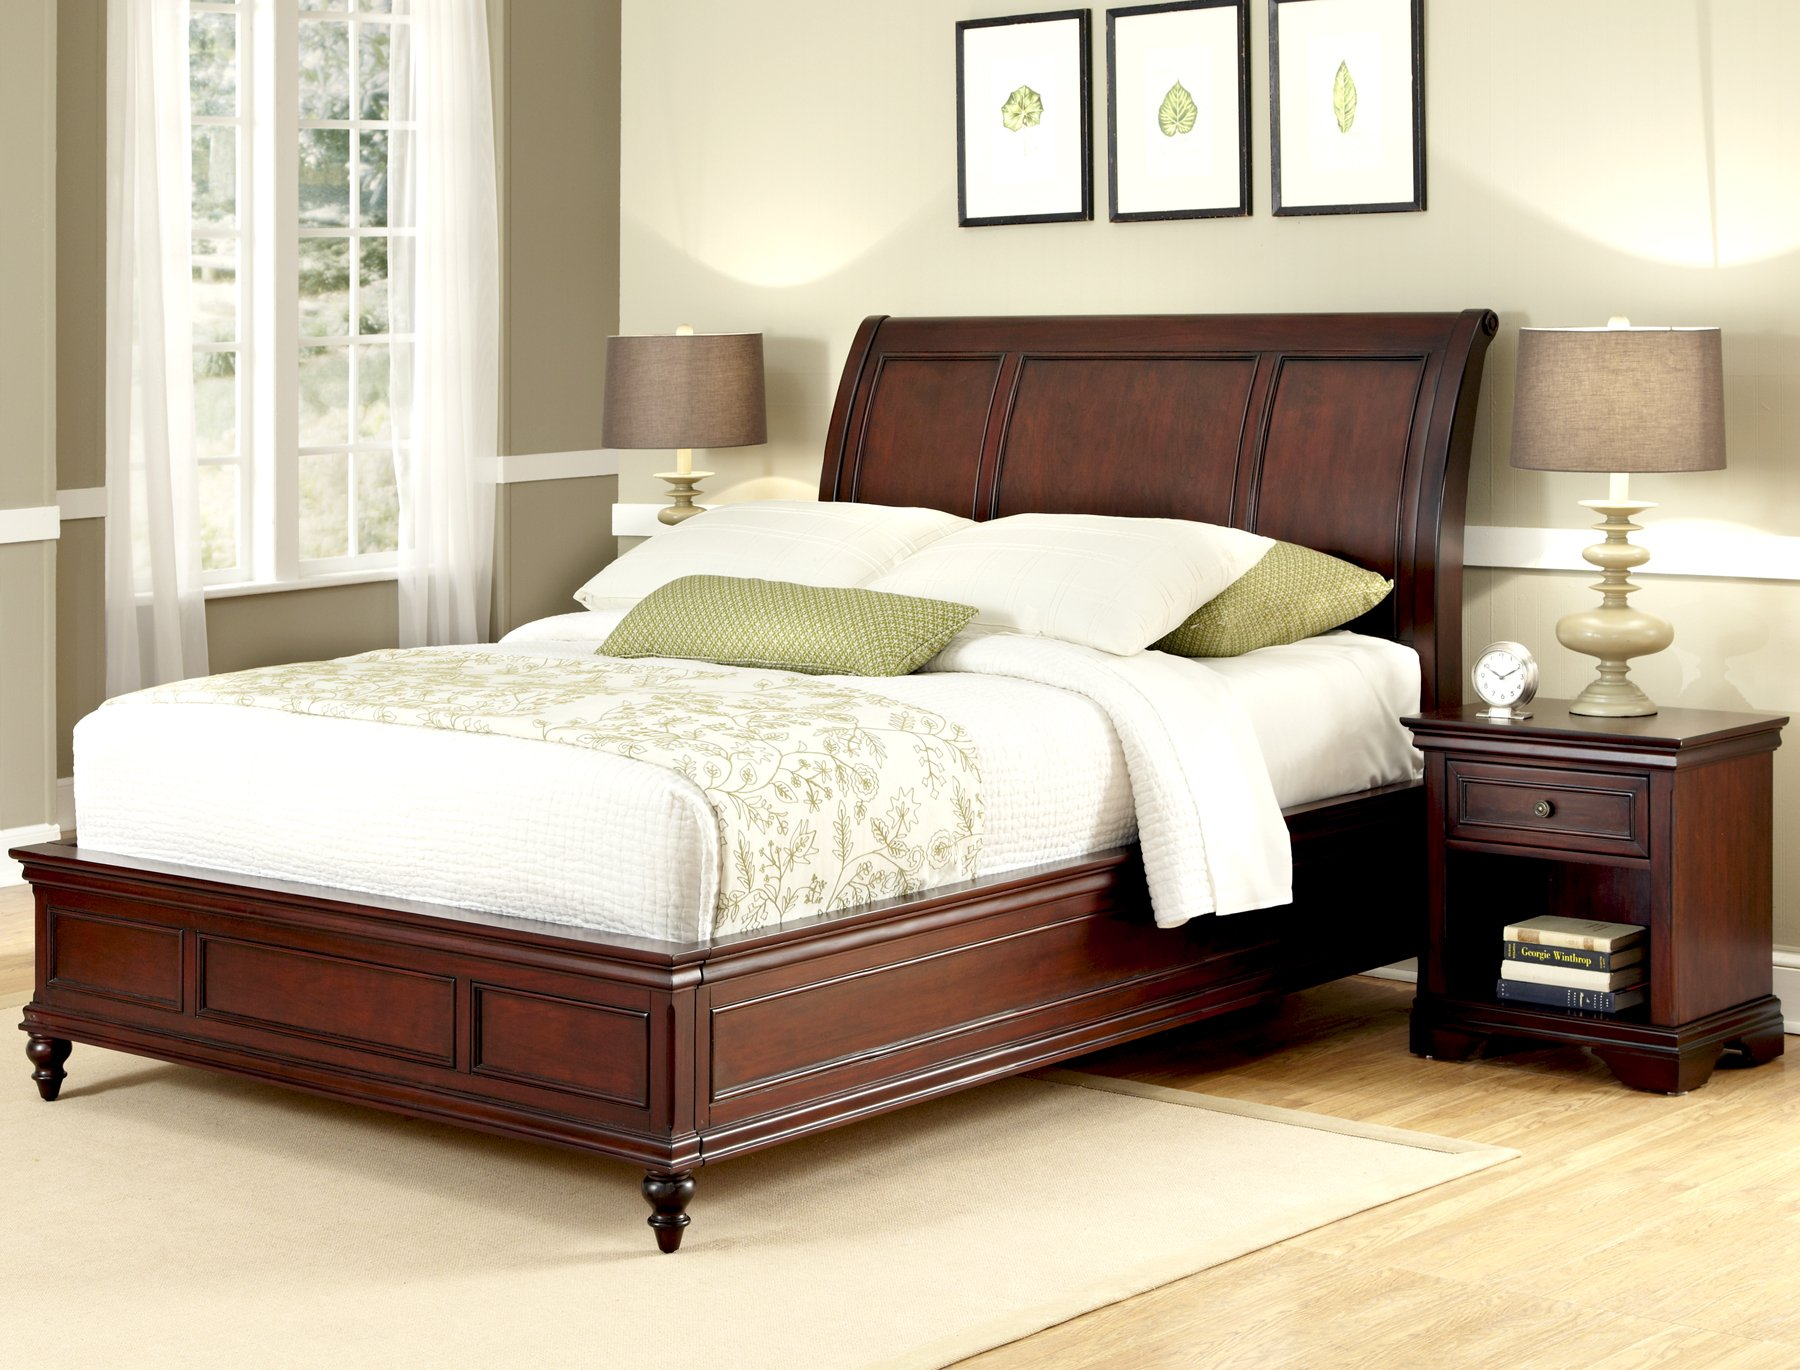 Lafayette Cherry King Sleigh Bed & Night Stand by Home Styles by Home Styles